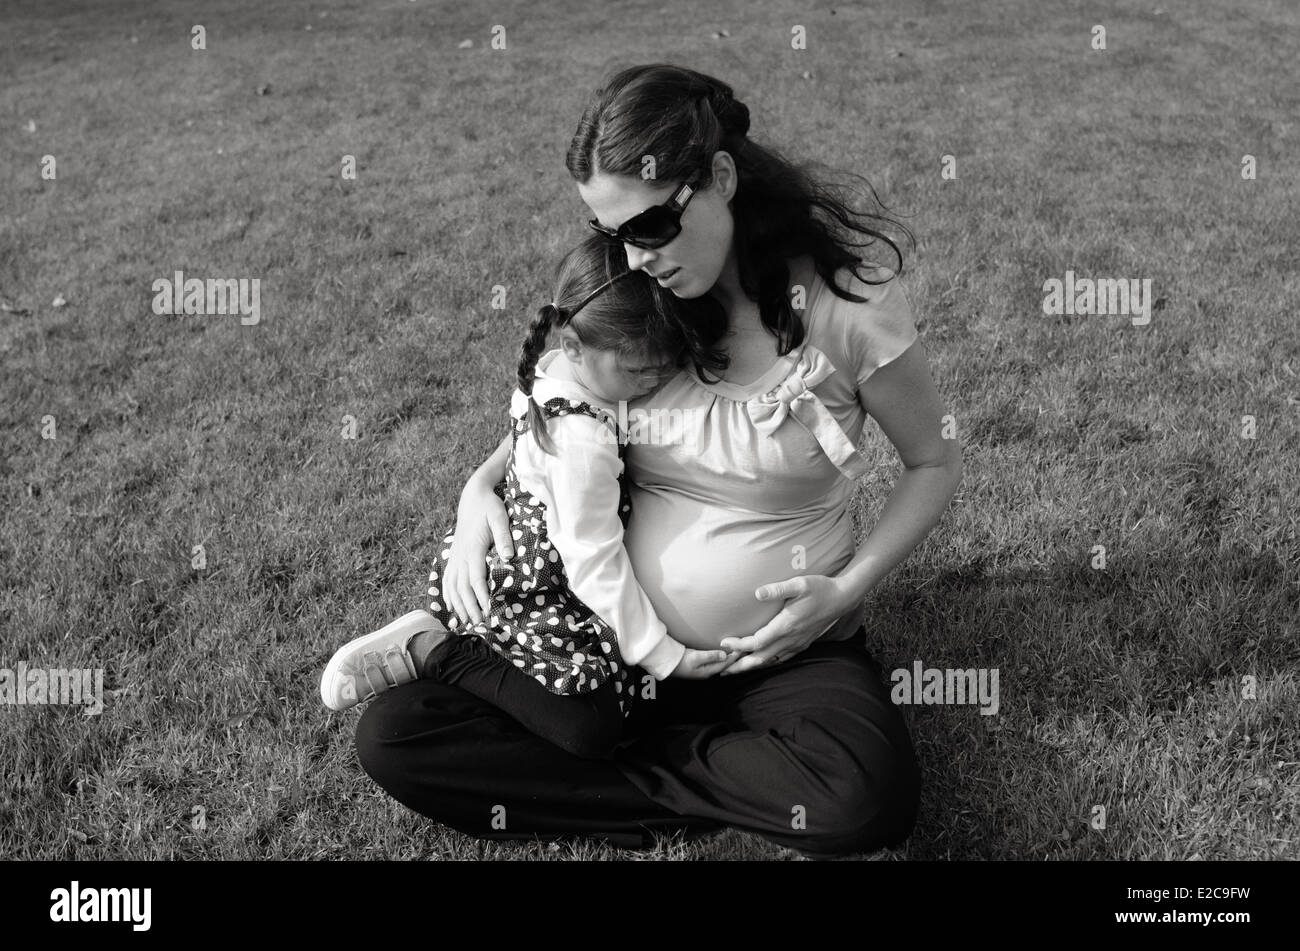 Pregnant woman hug her daughter during pregnancy outdoor at the park. - Stock Image